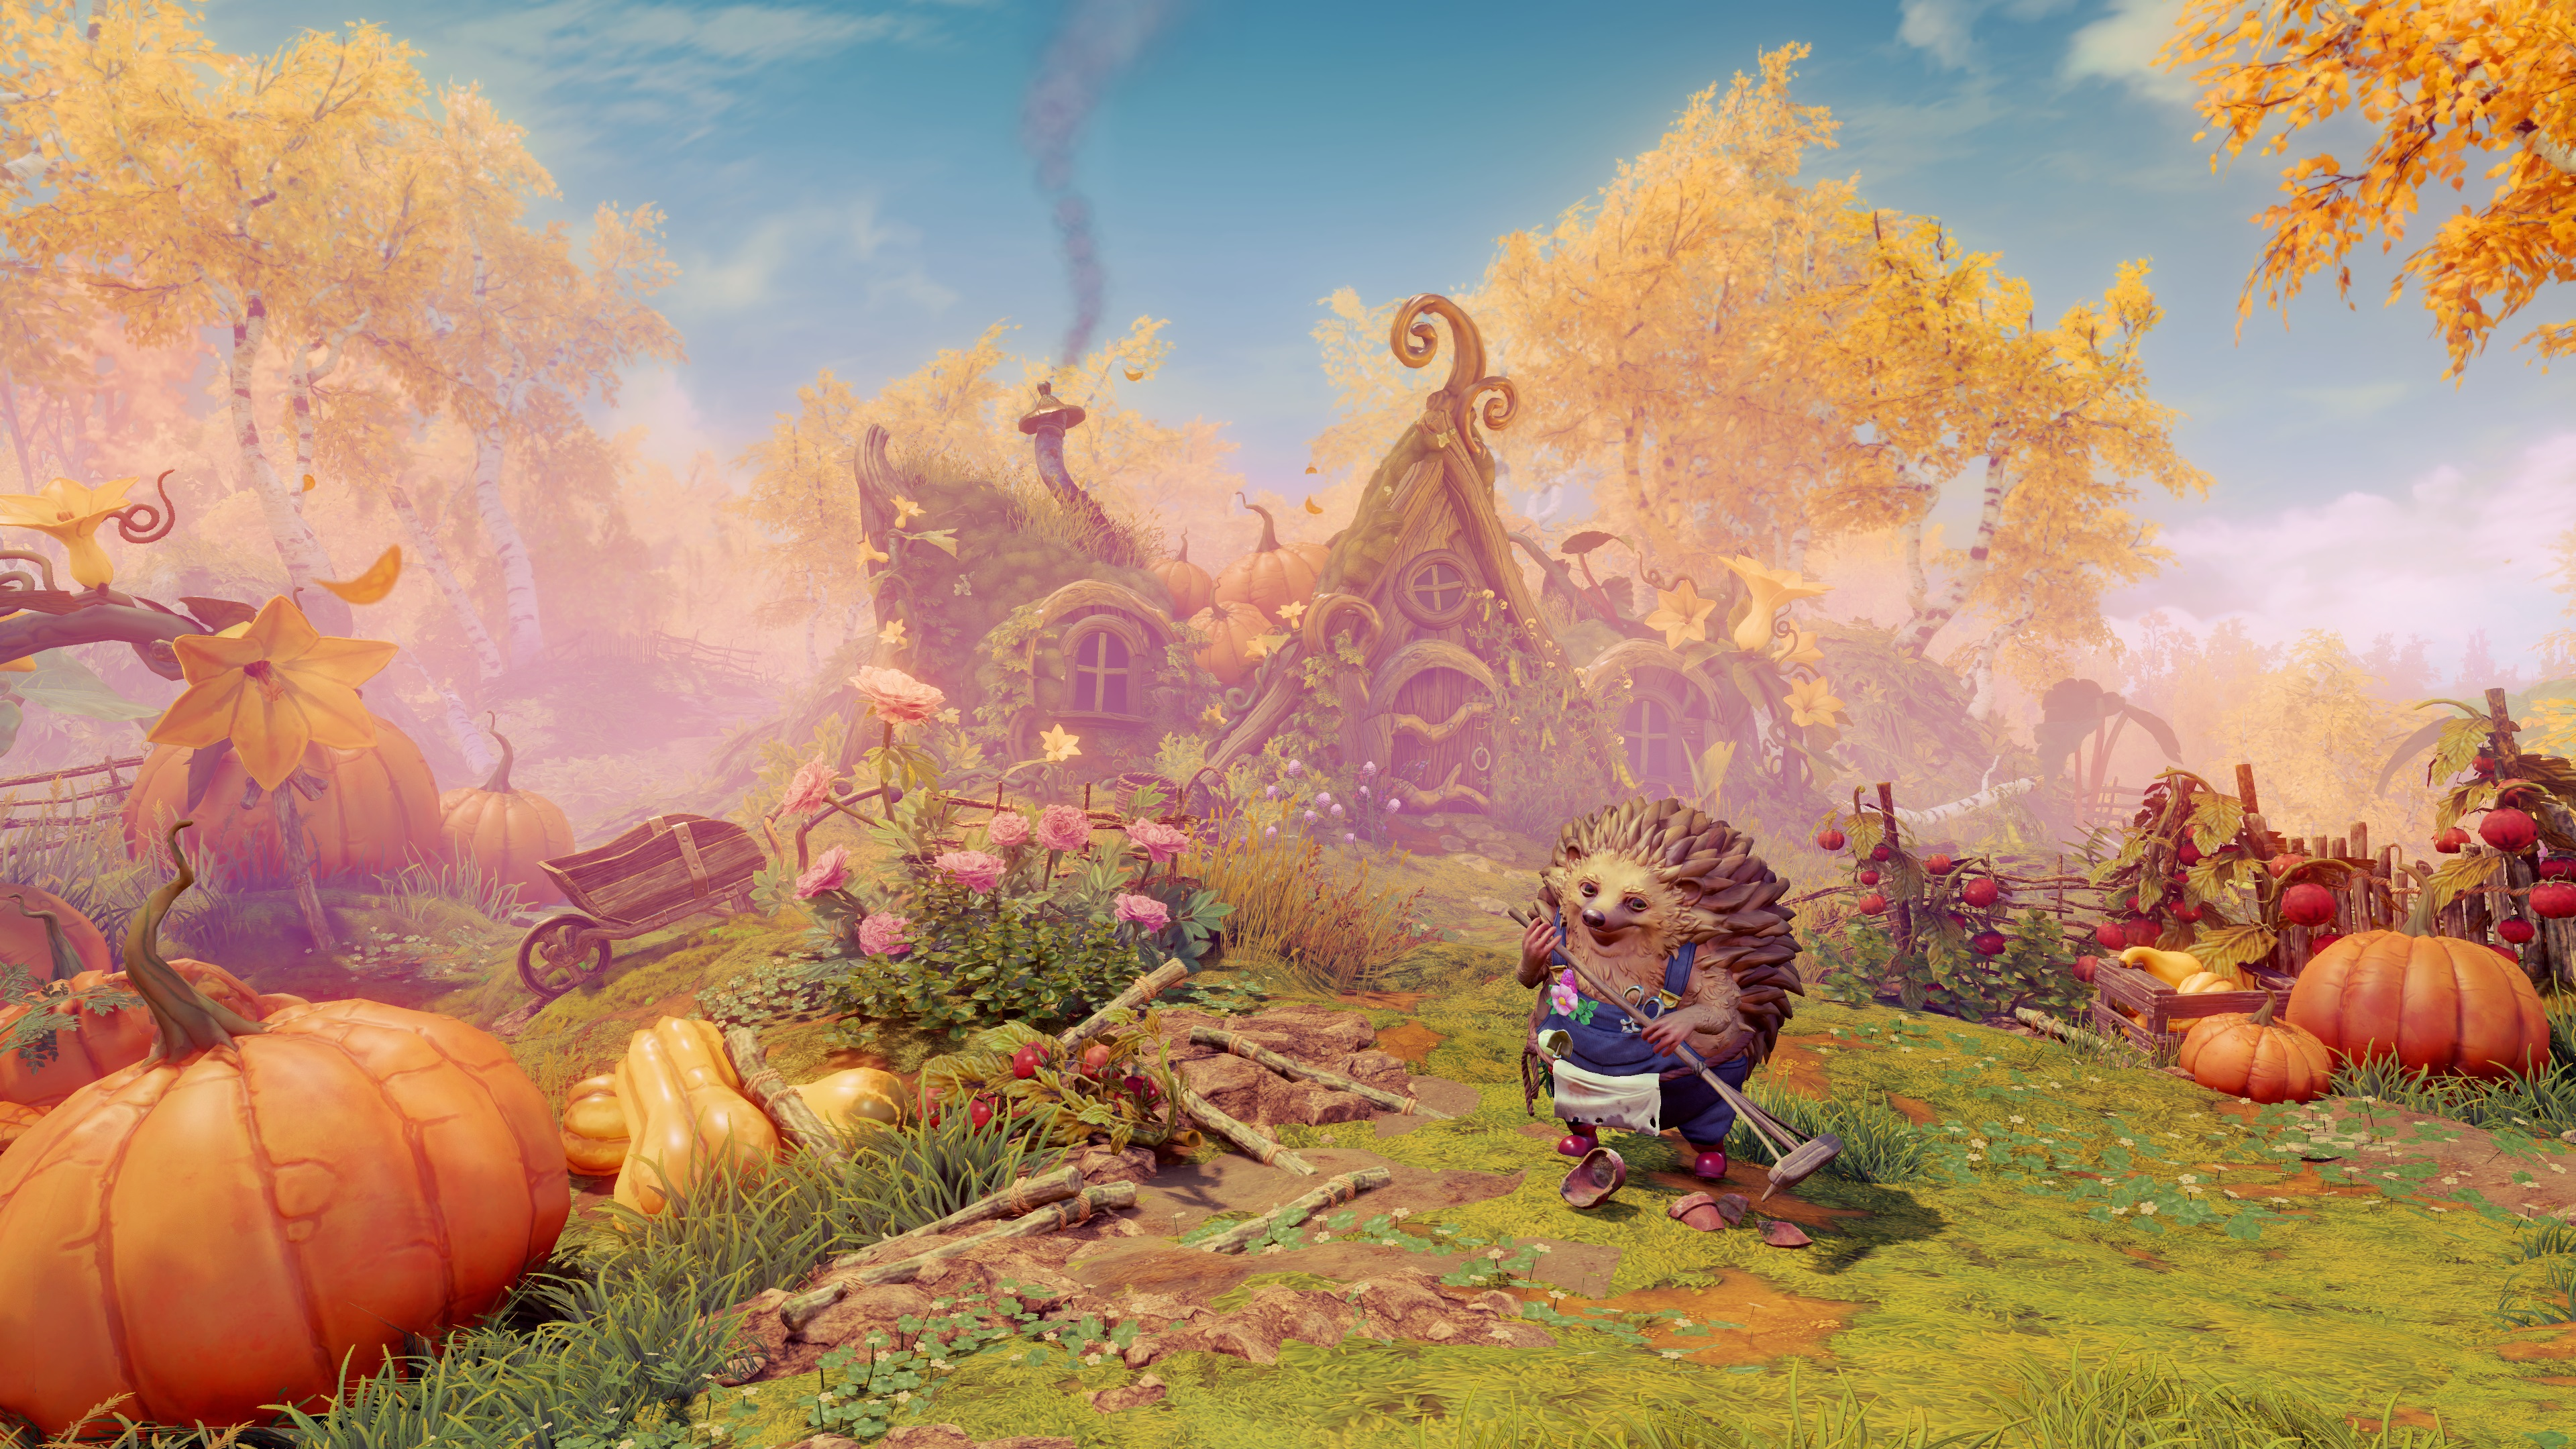 Trine 4 ditches 3D and is due out this year | PC Gamer